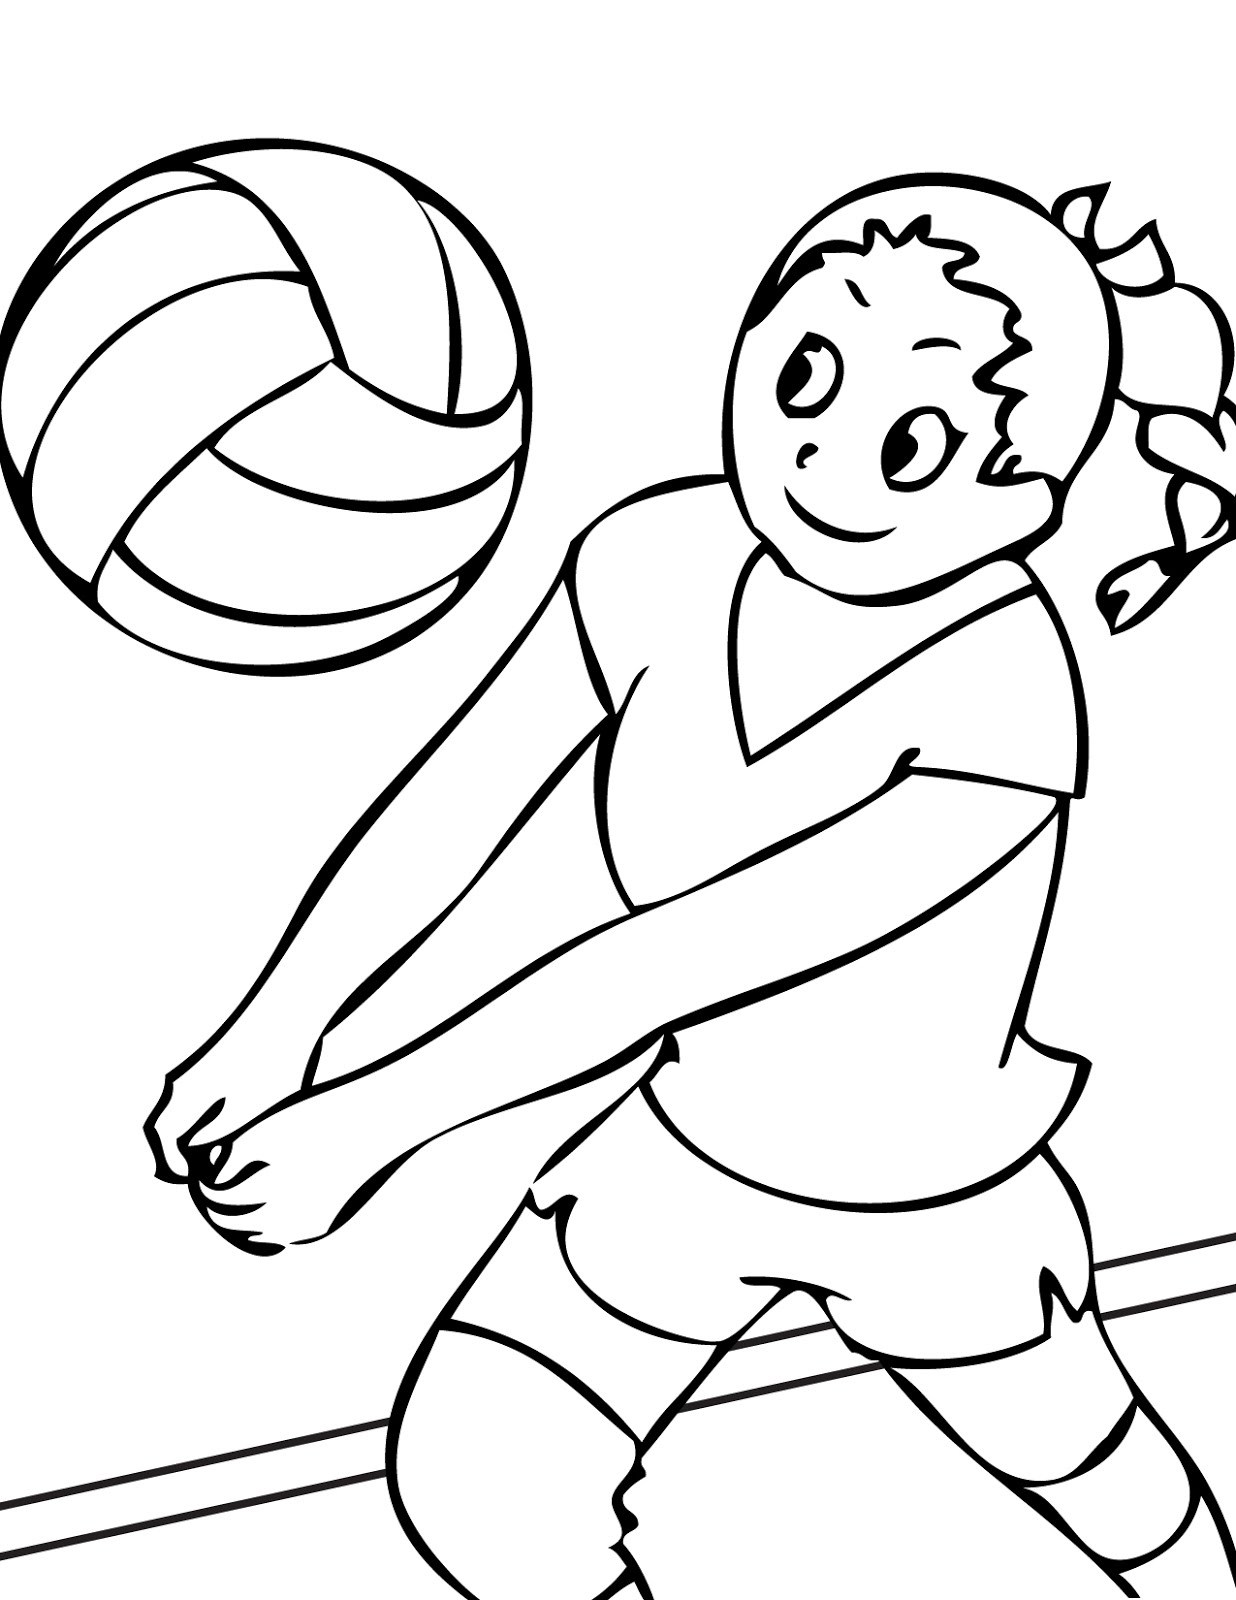 coloring sheets sports sports for children sports kids coloring pages sheets sports coloring